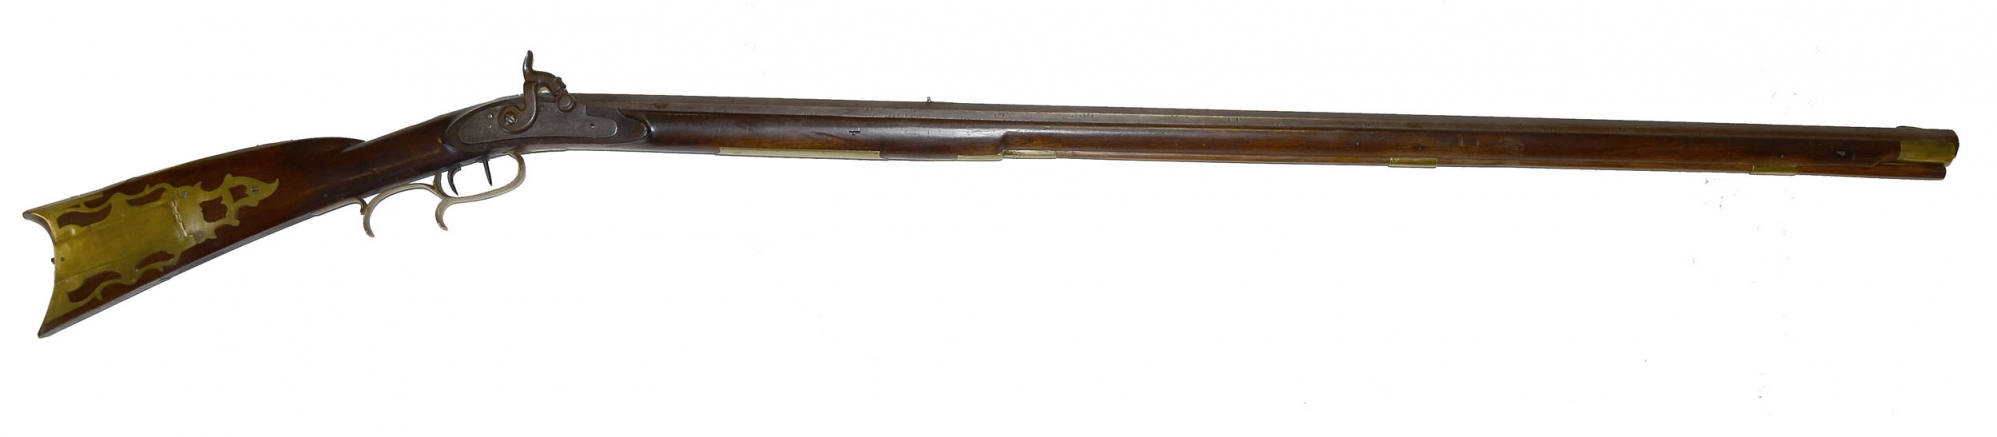 MAKER MARKED FULL STOCK LONG RIFLE